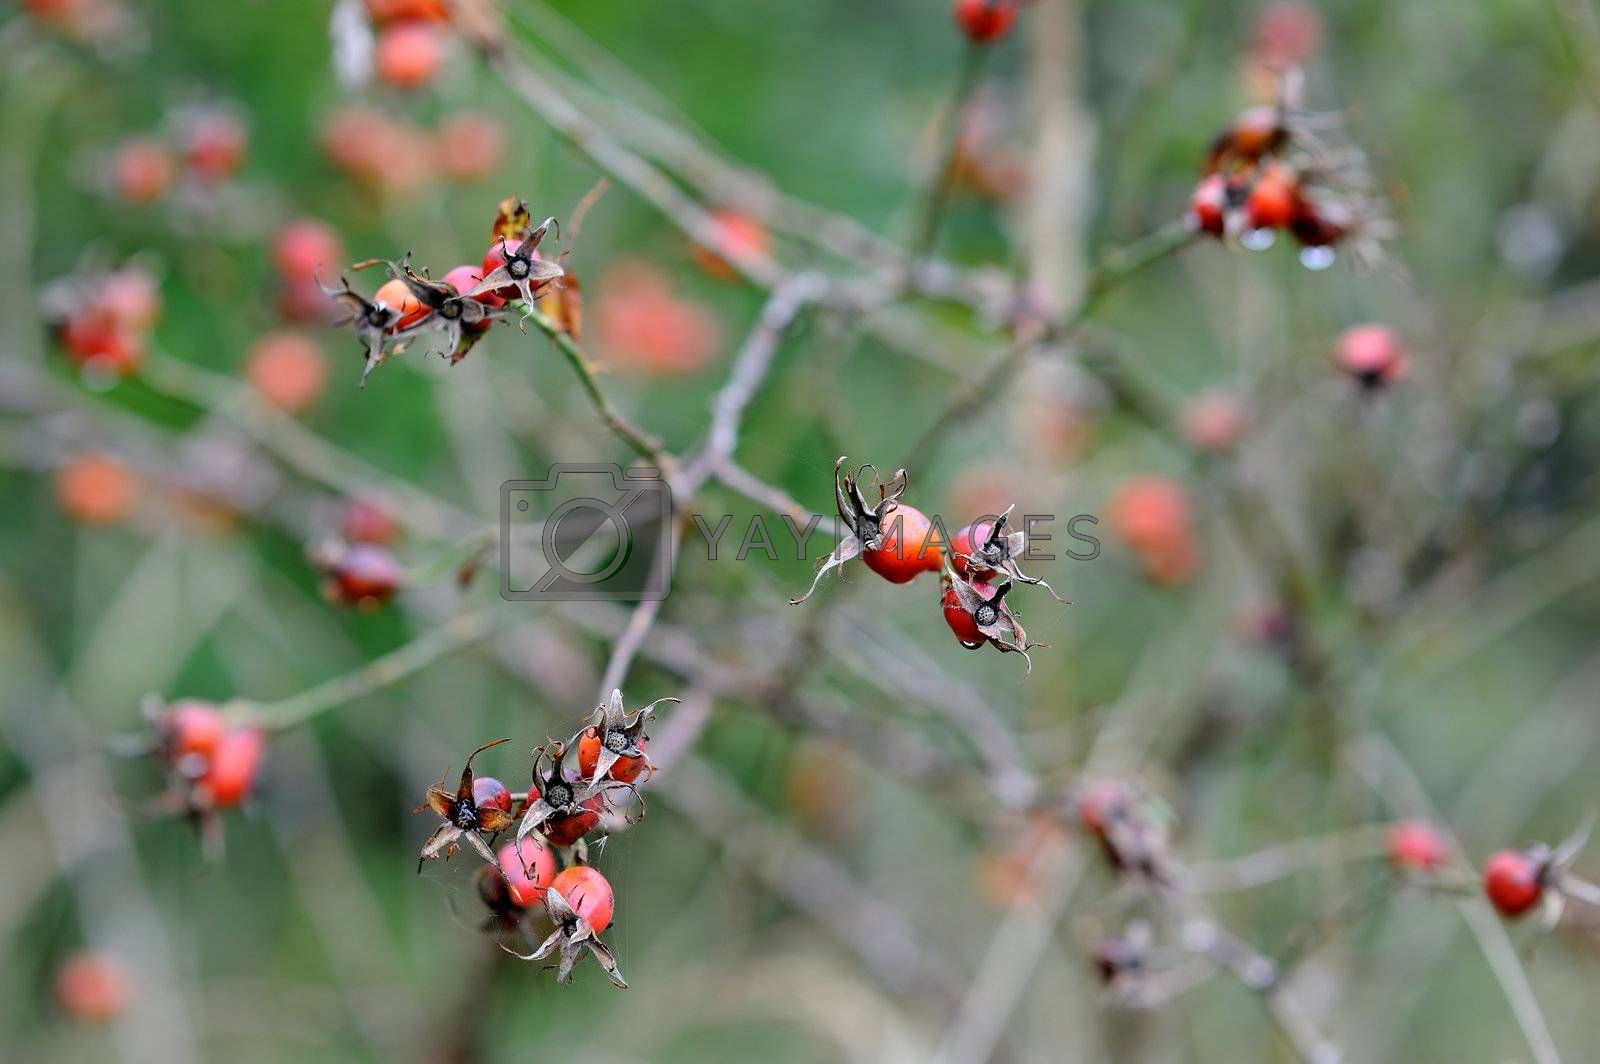 A branch of wild rose hips